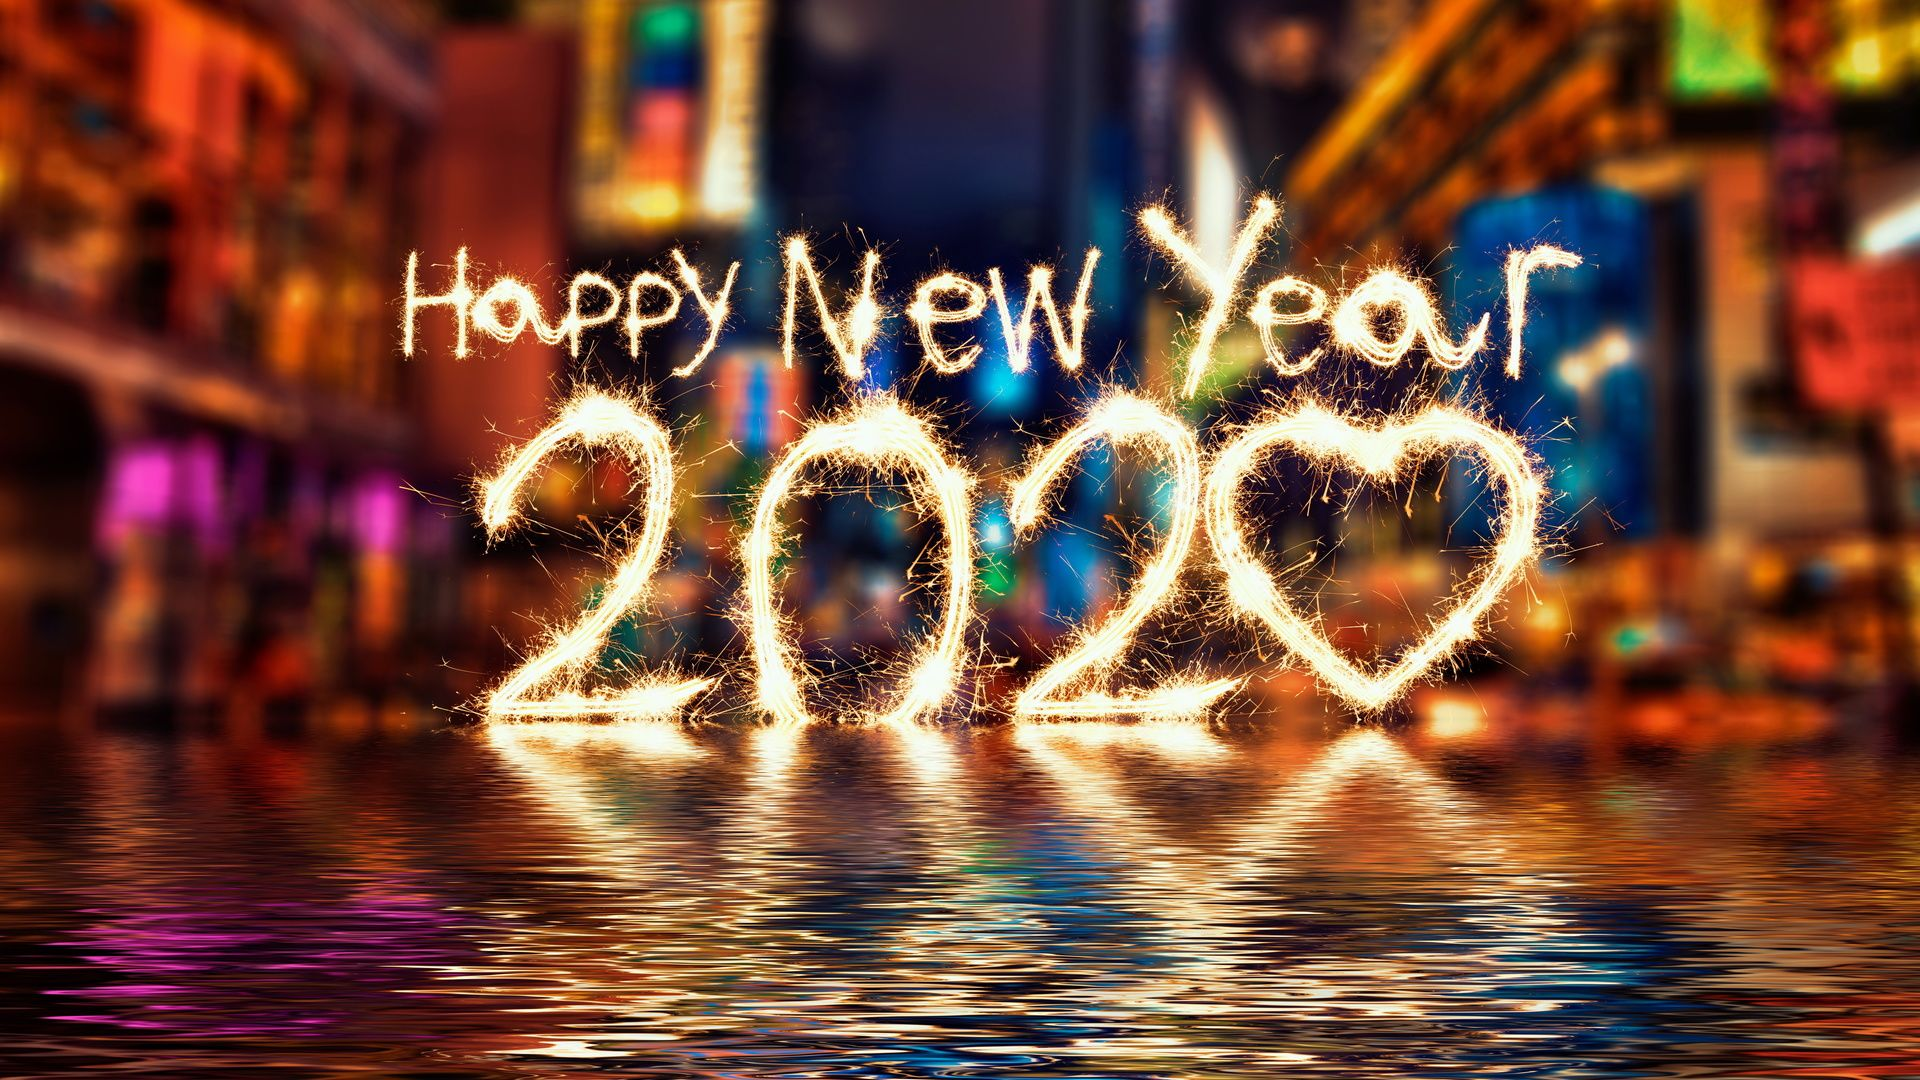 download Happy New Year 2020 Wallpapers 30 images 1920x1080